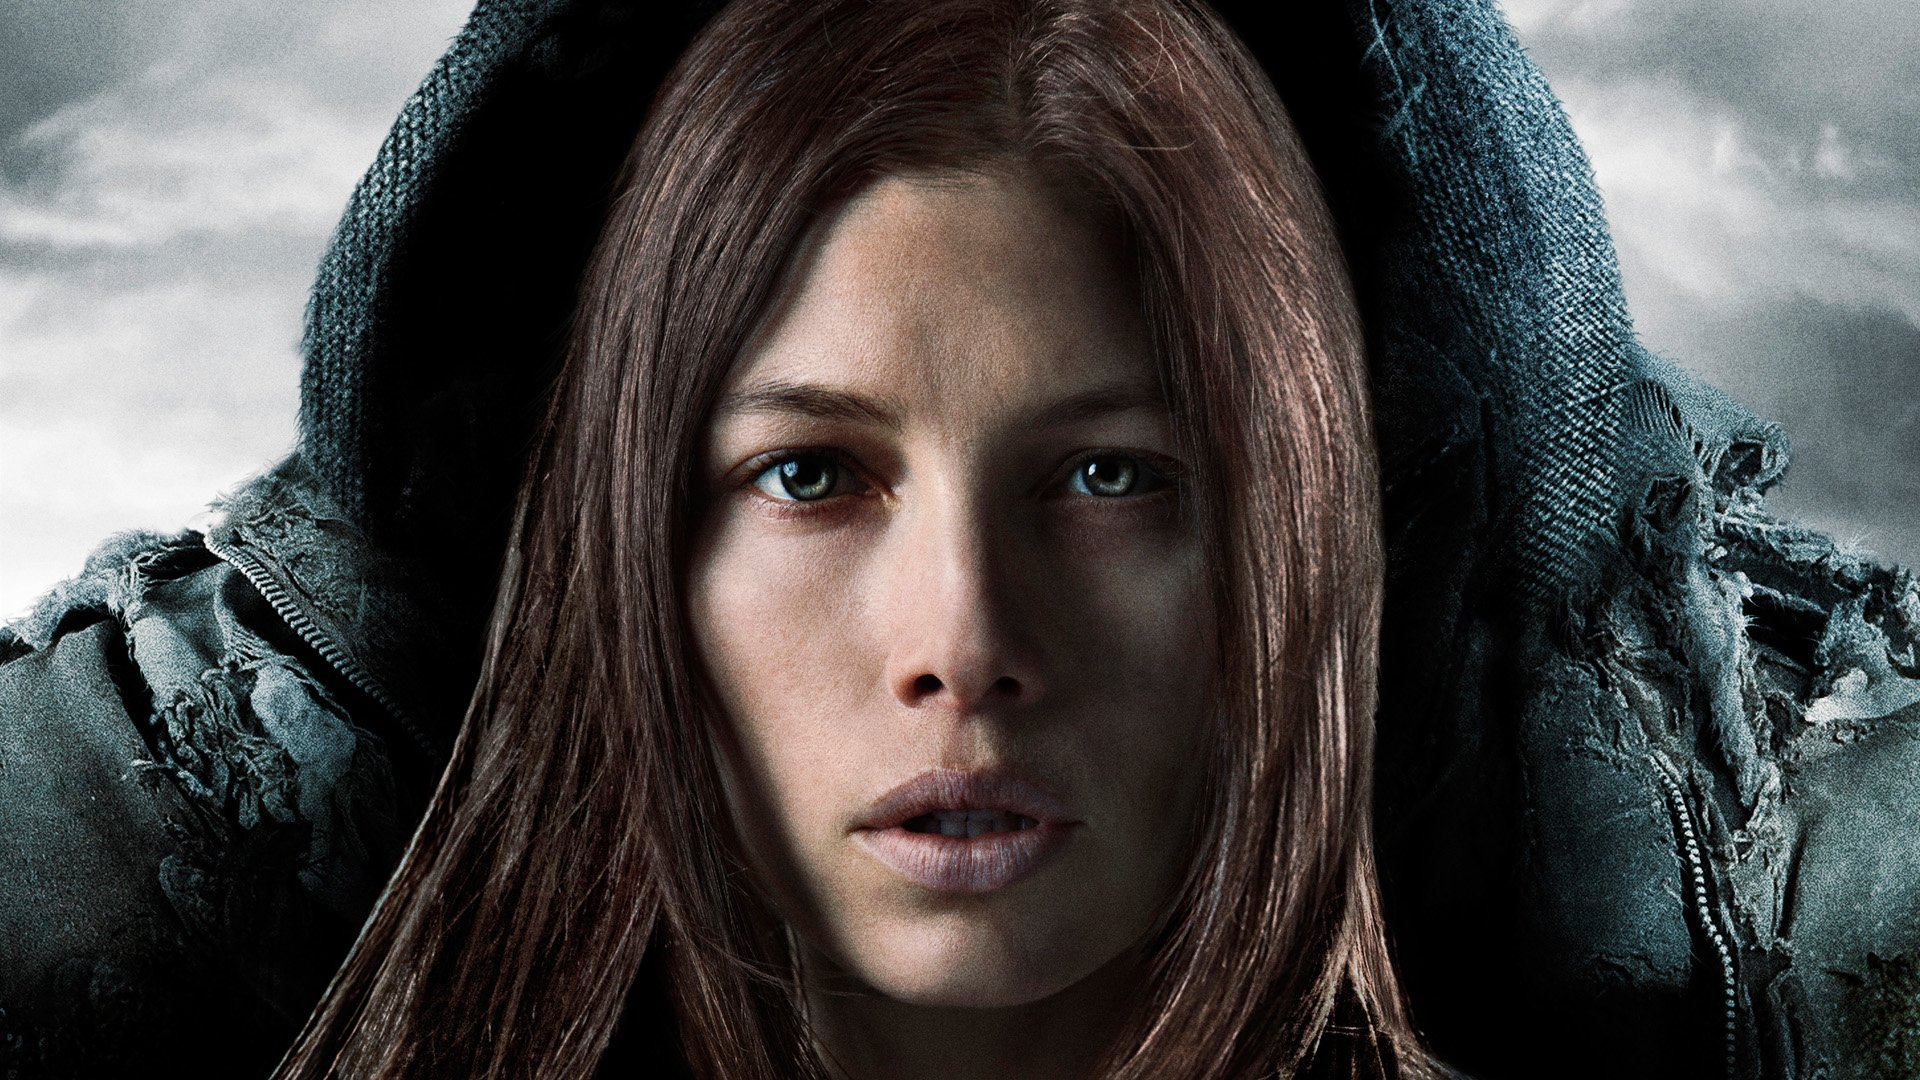 Movie - The Tall Man  Jessica Biel Wallpaper